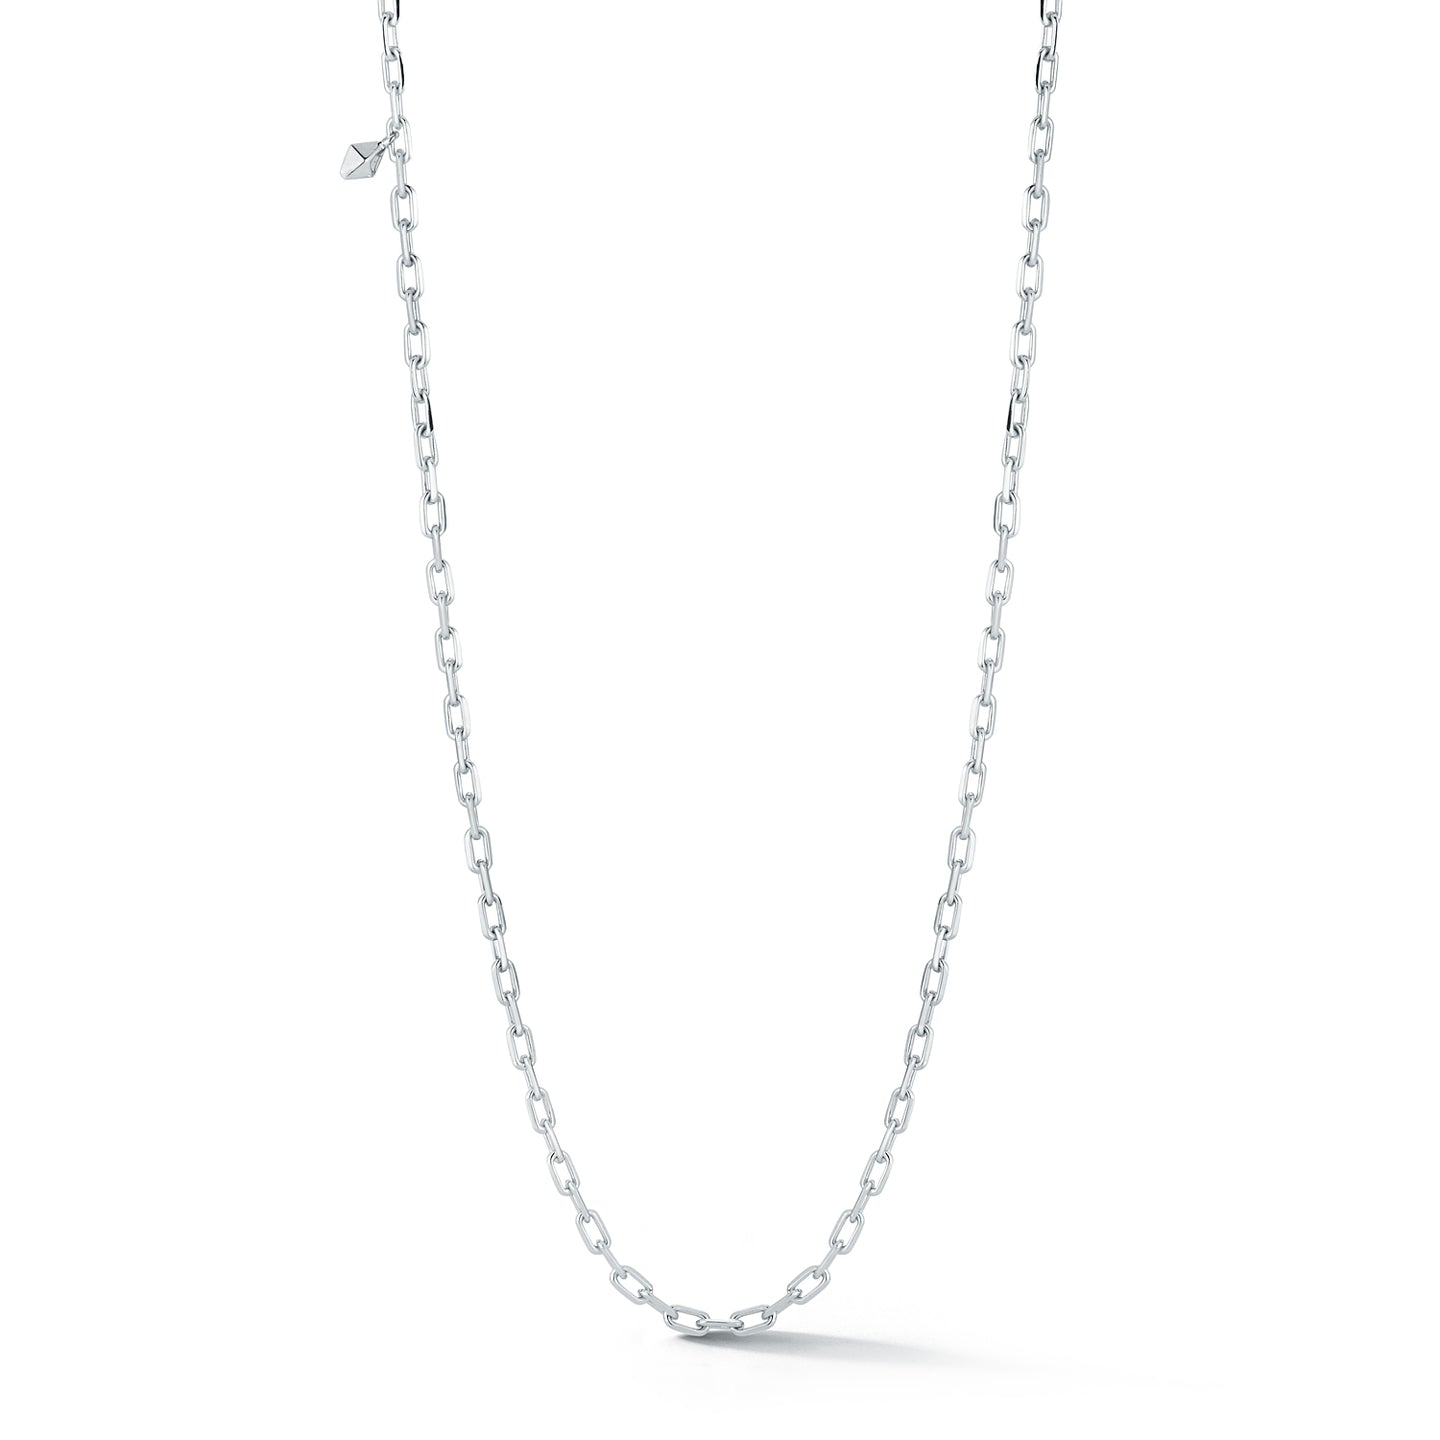 SAXON STERLING SILVER CHARM CHAIN NECKLACE